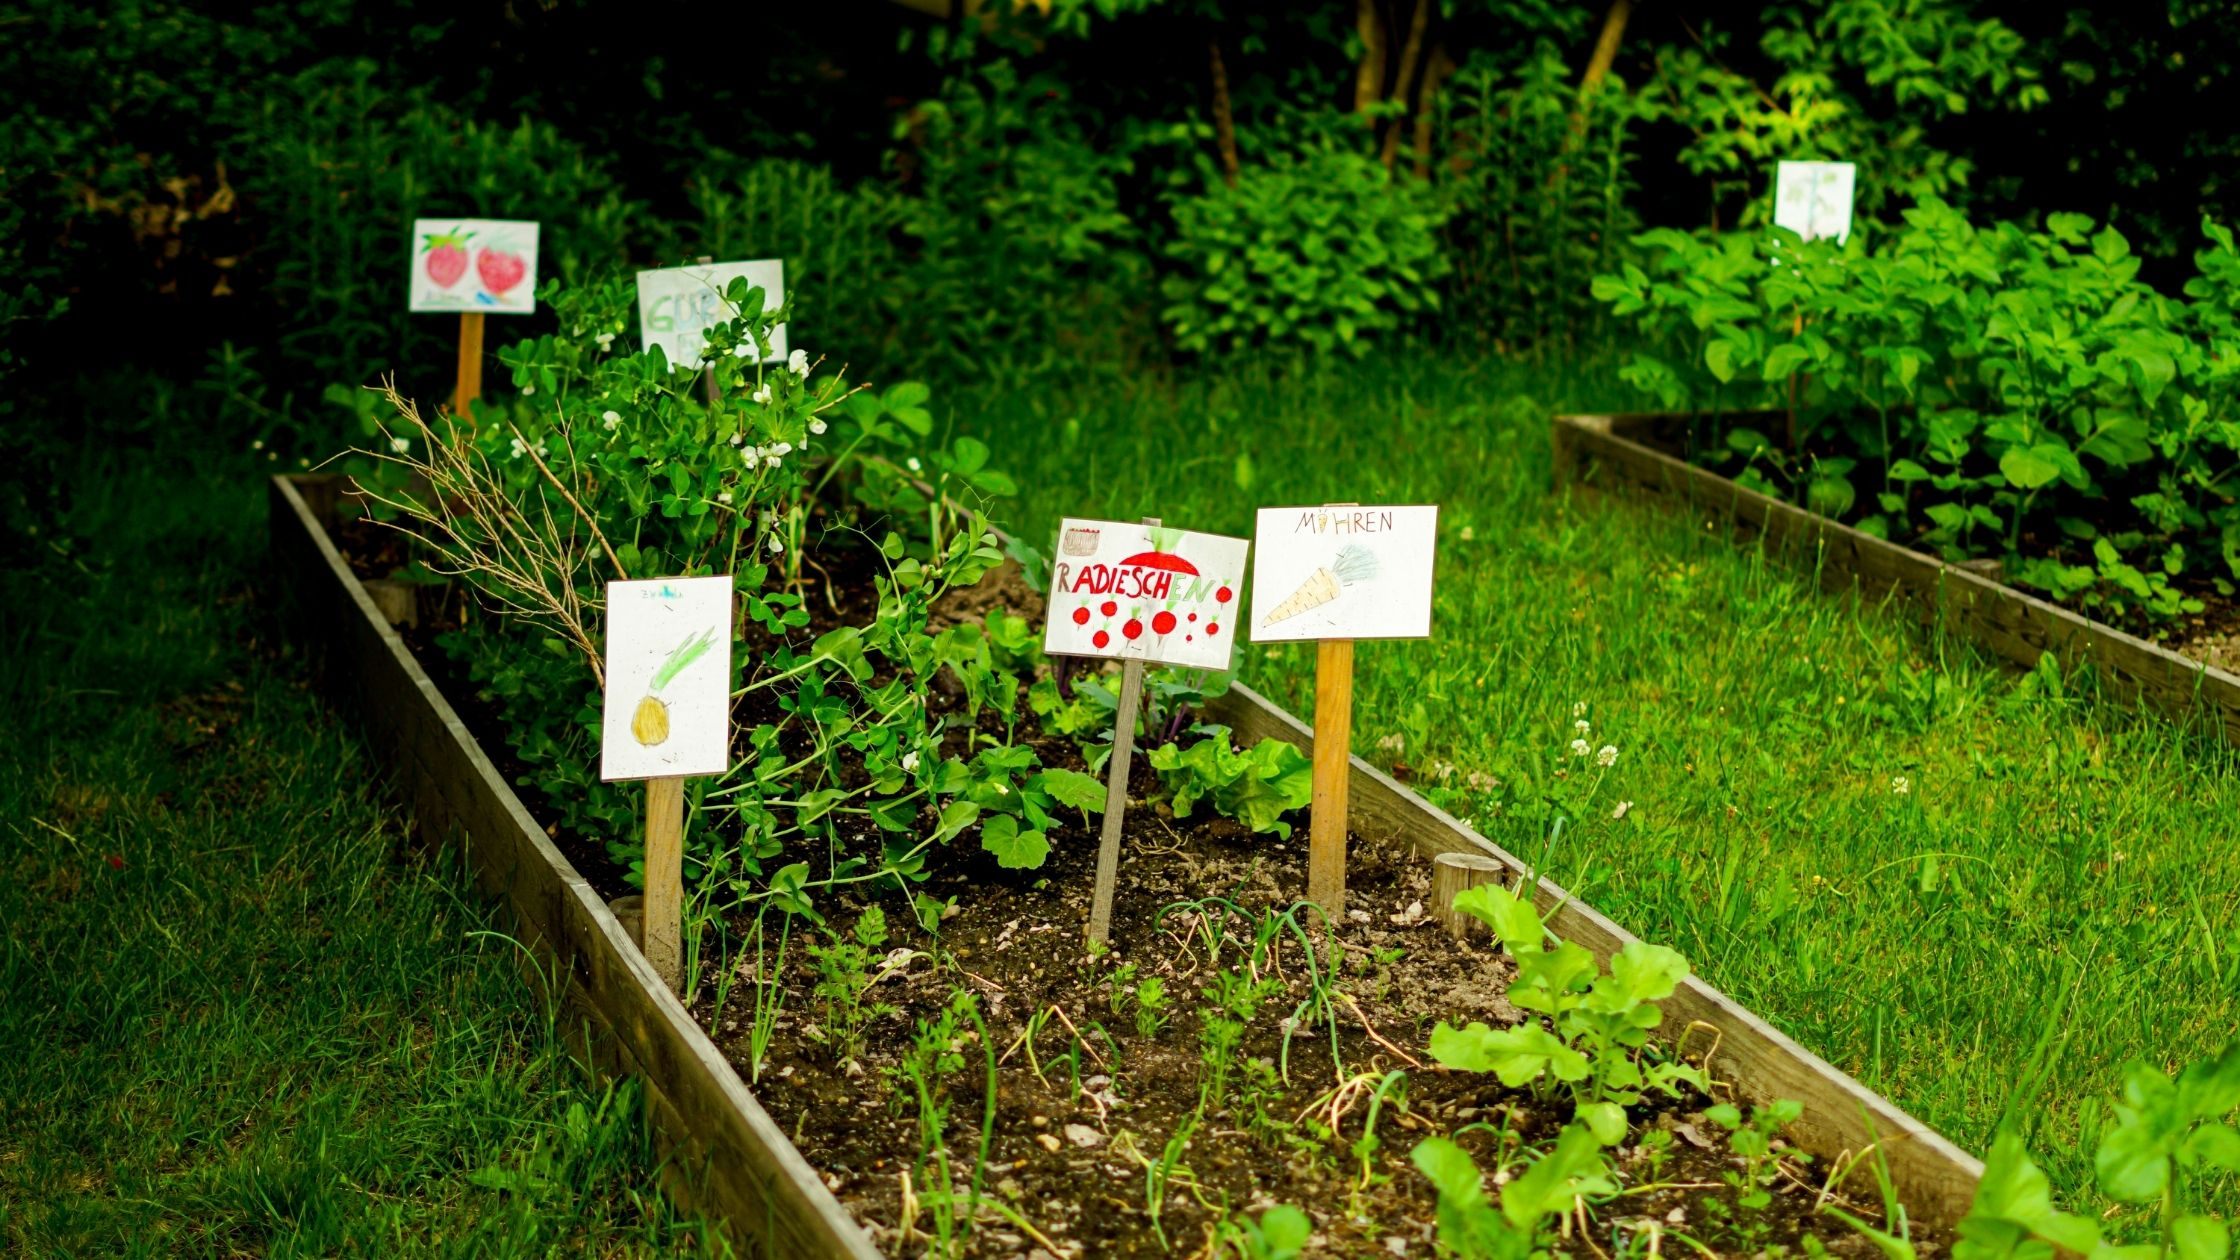 School gardens are an excellent tool, not only for educational enhancement, but also inspiring future generations to become food and environmental justice activists!